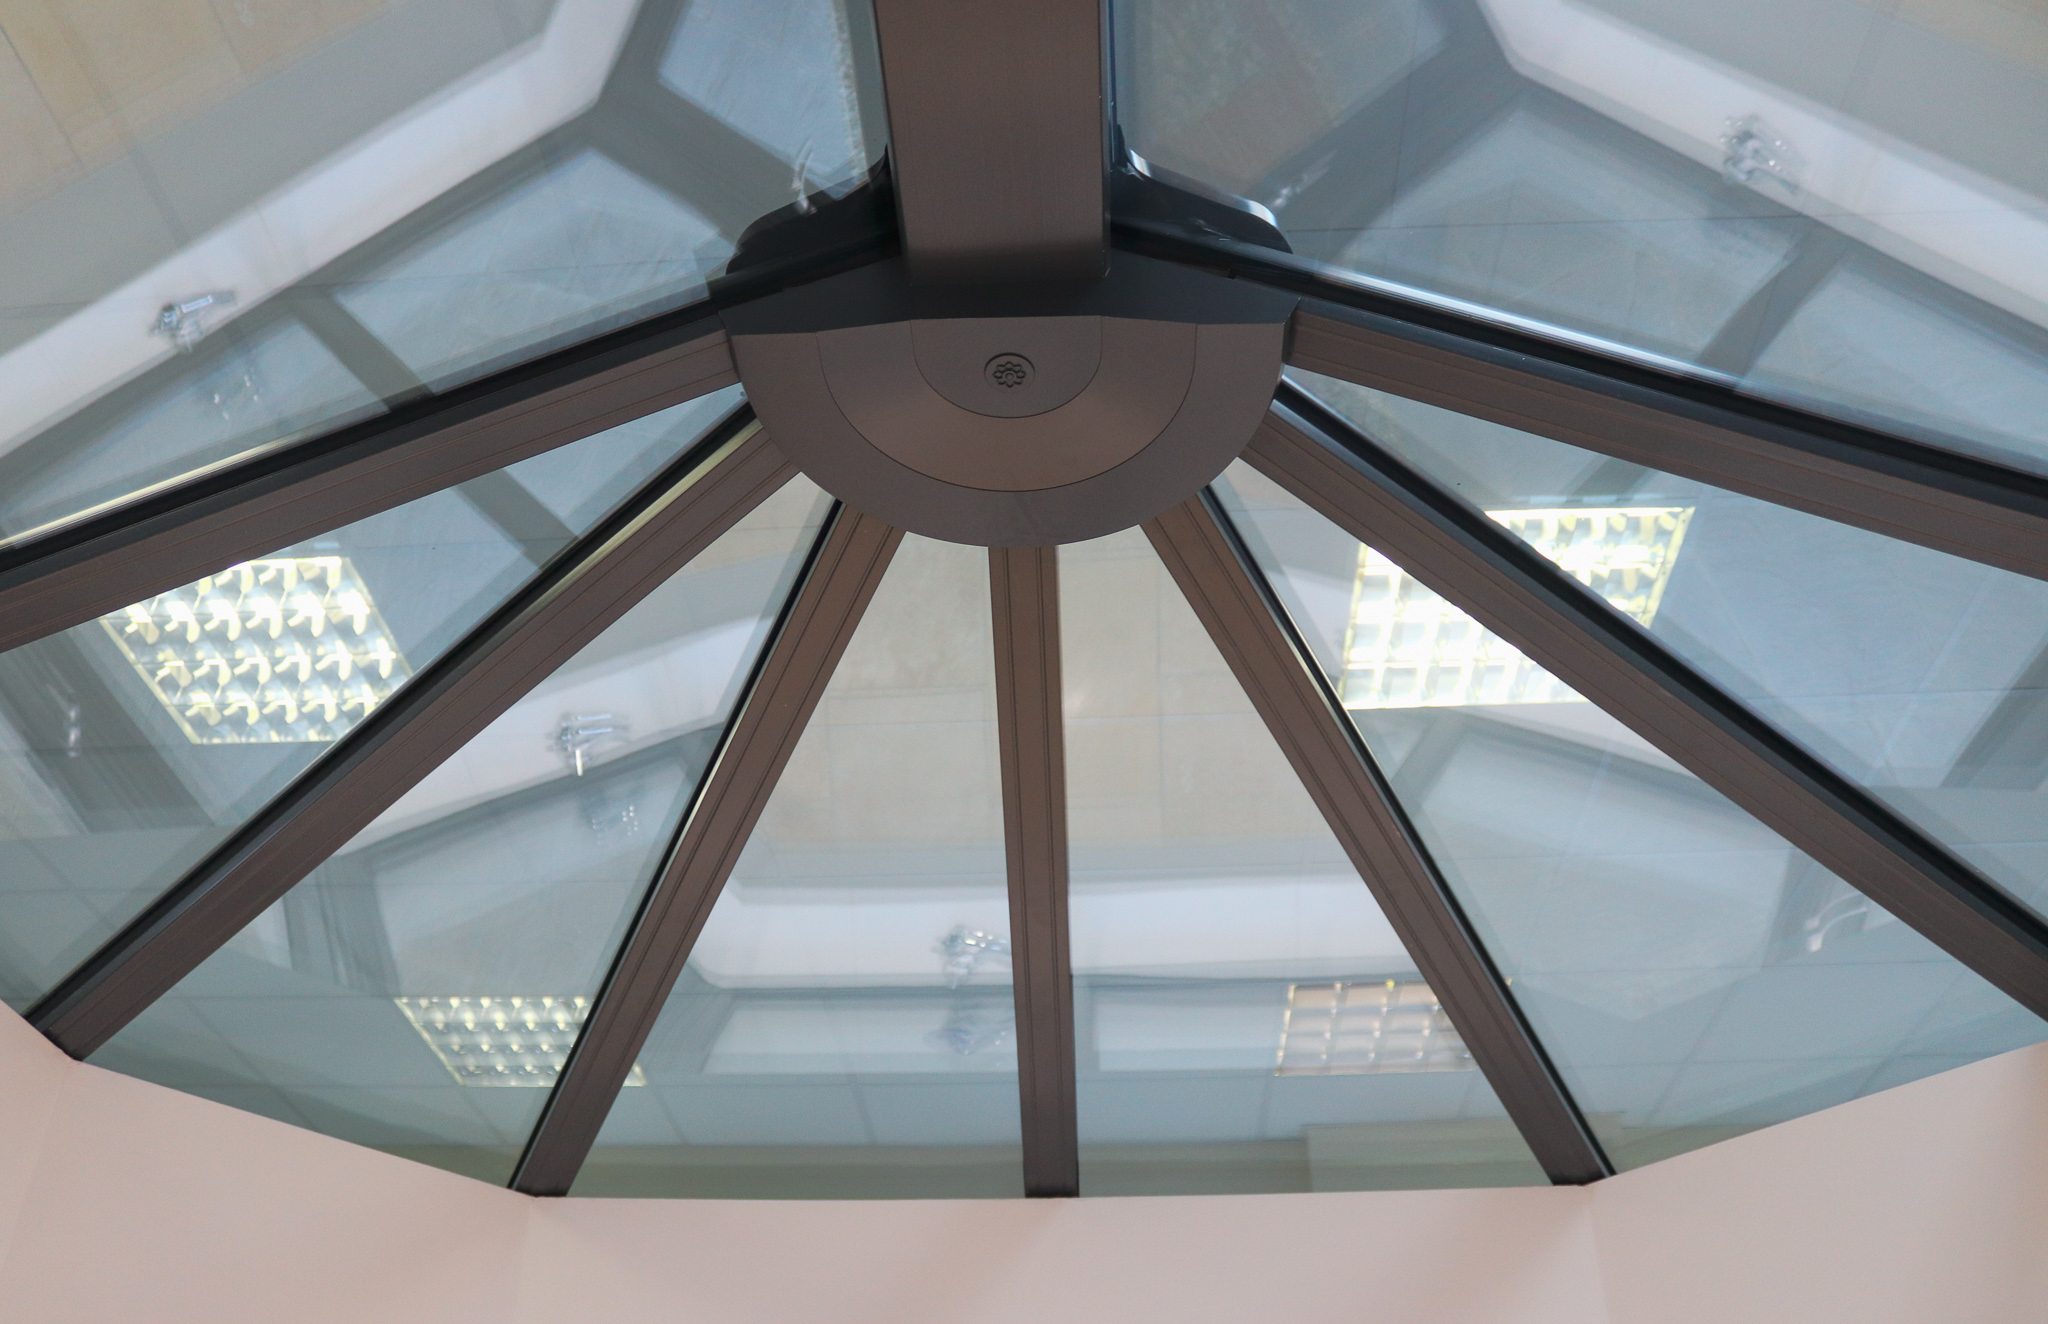 Image of see through ceiling.